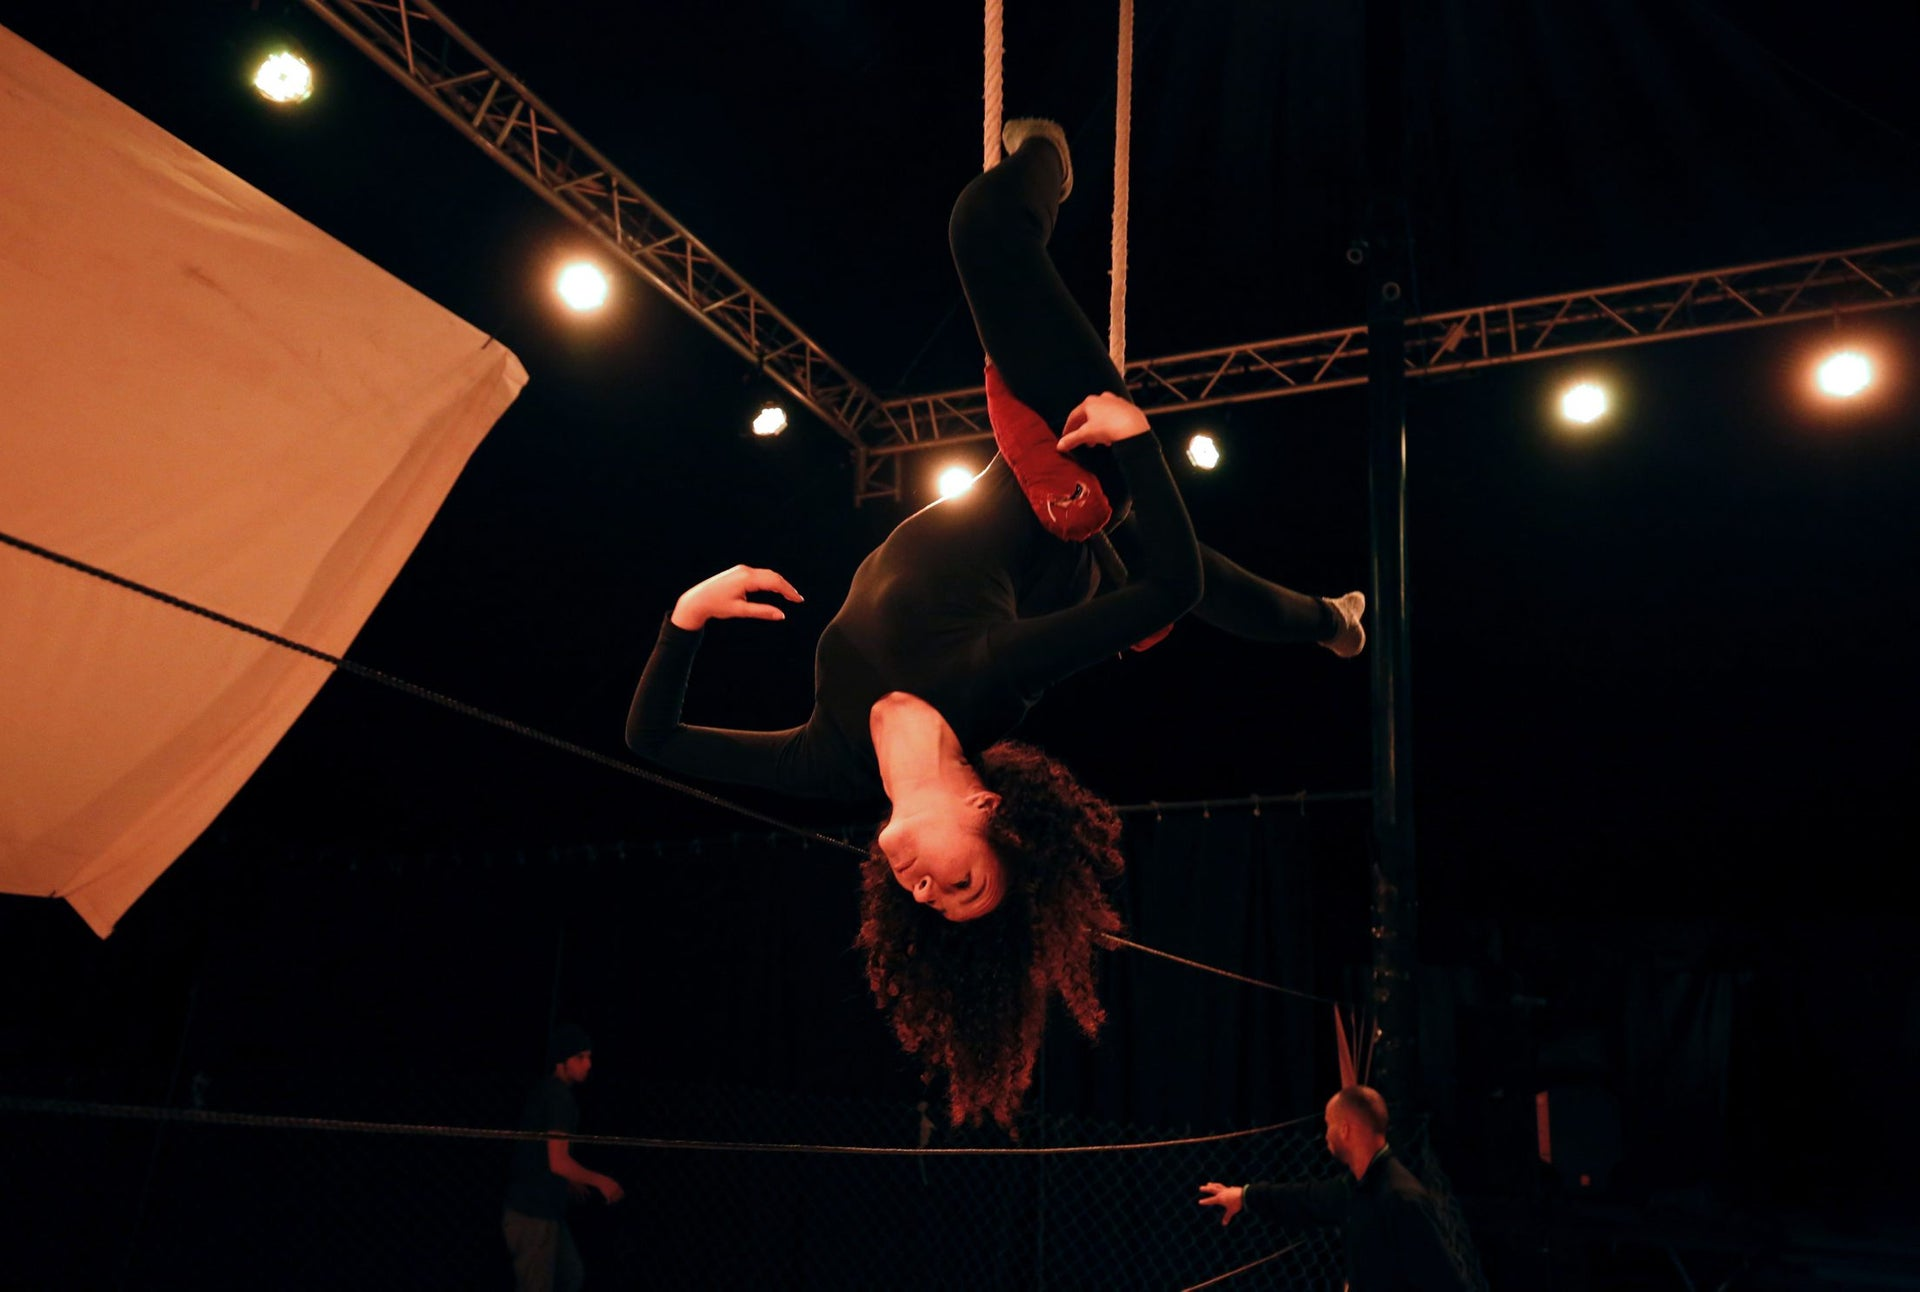 A Palestinian woman trains at the Palestinian Circus School in the village of Bir Zeit, near Ramallah on March 21, 2016.